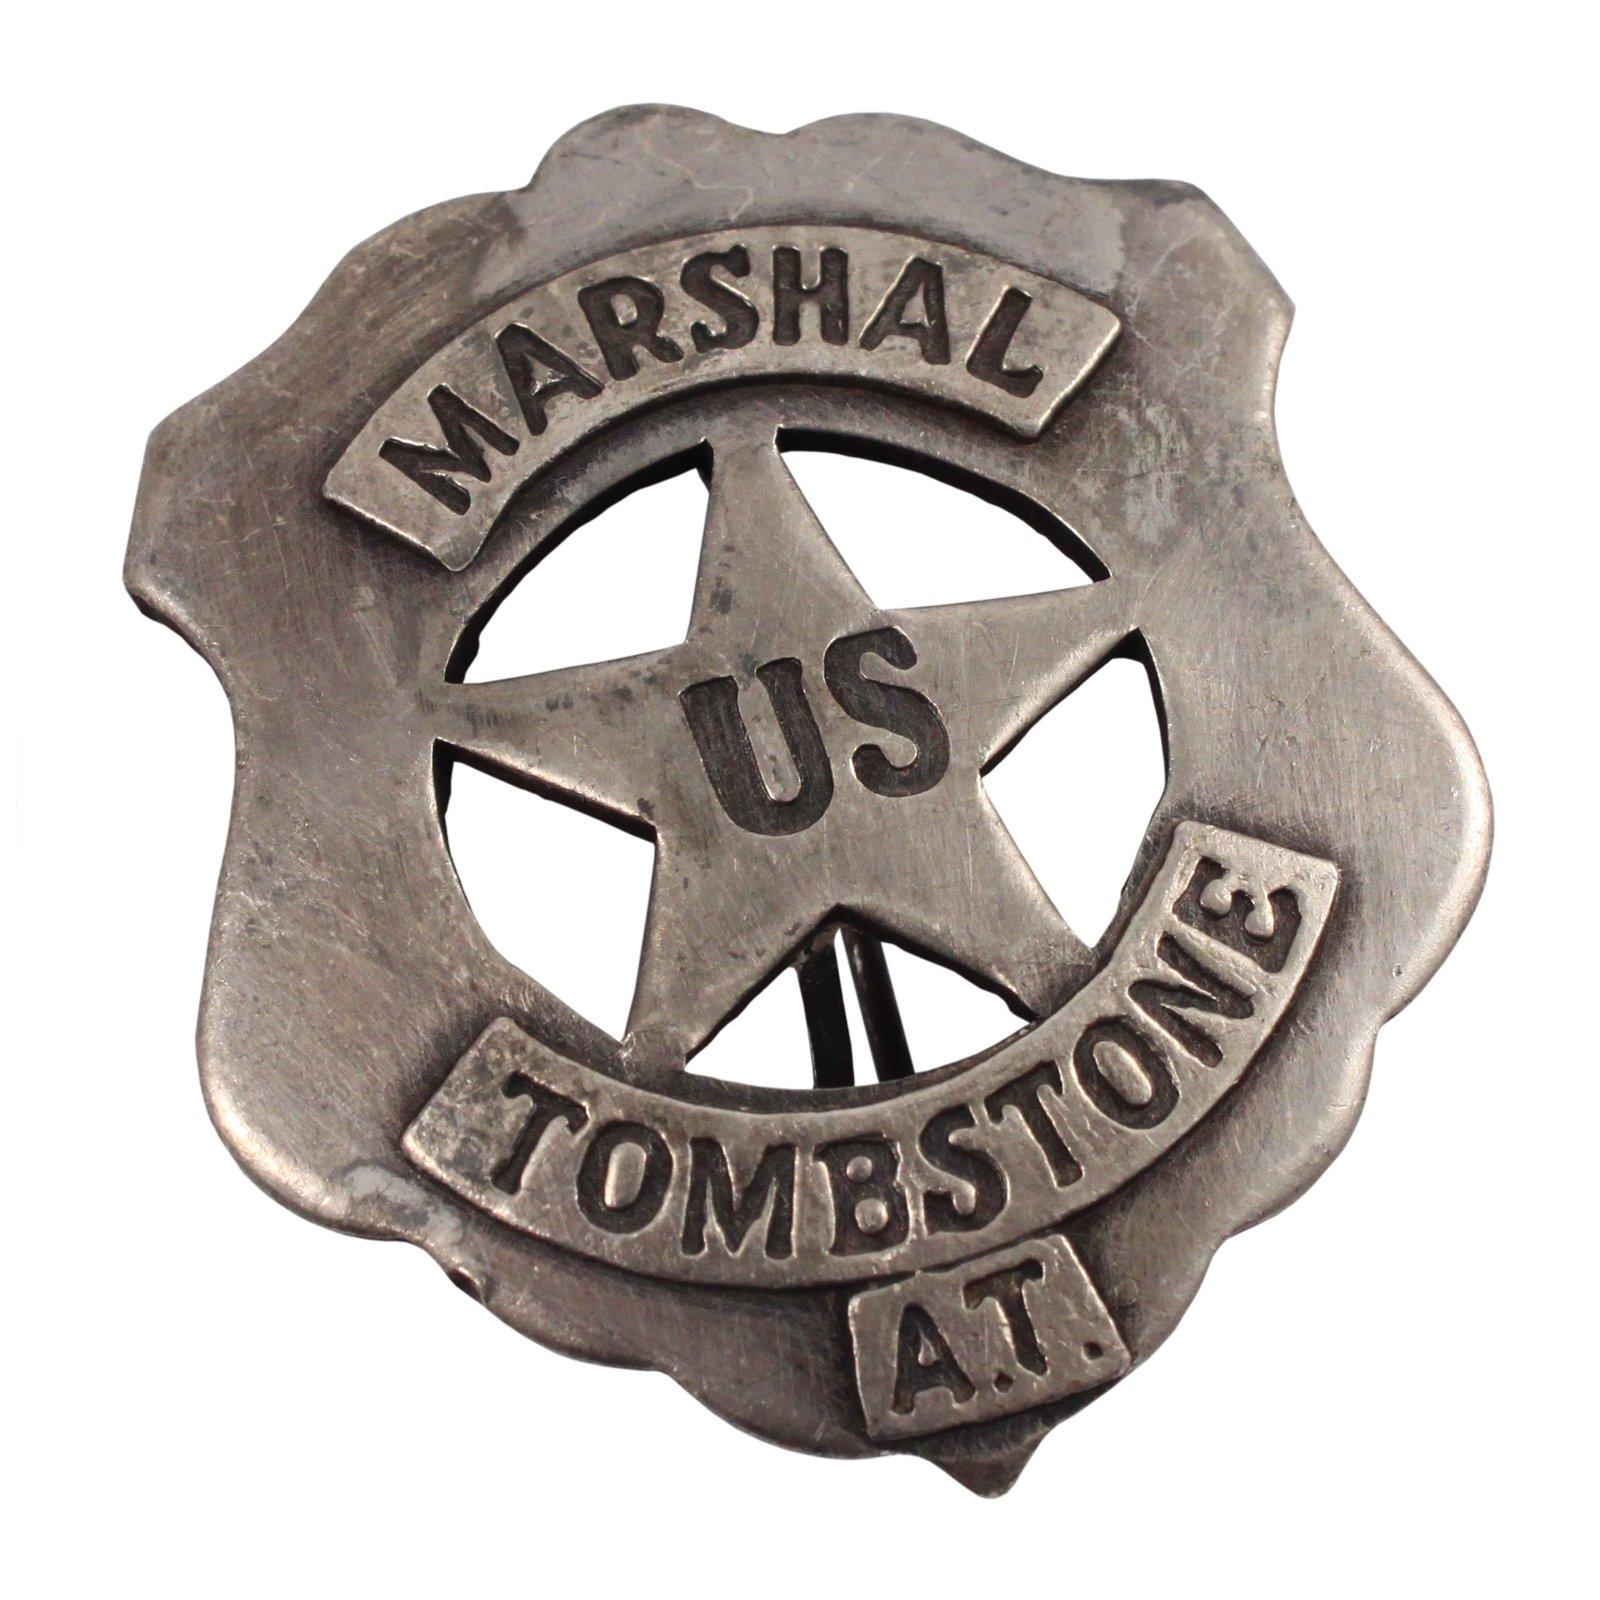 Tombstone United States Marshal Old West Badge